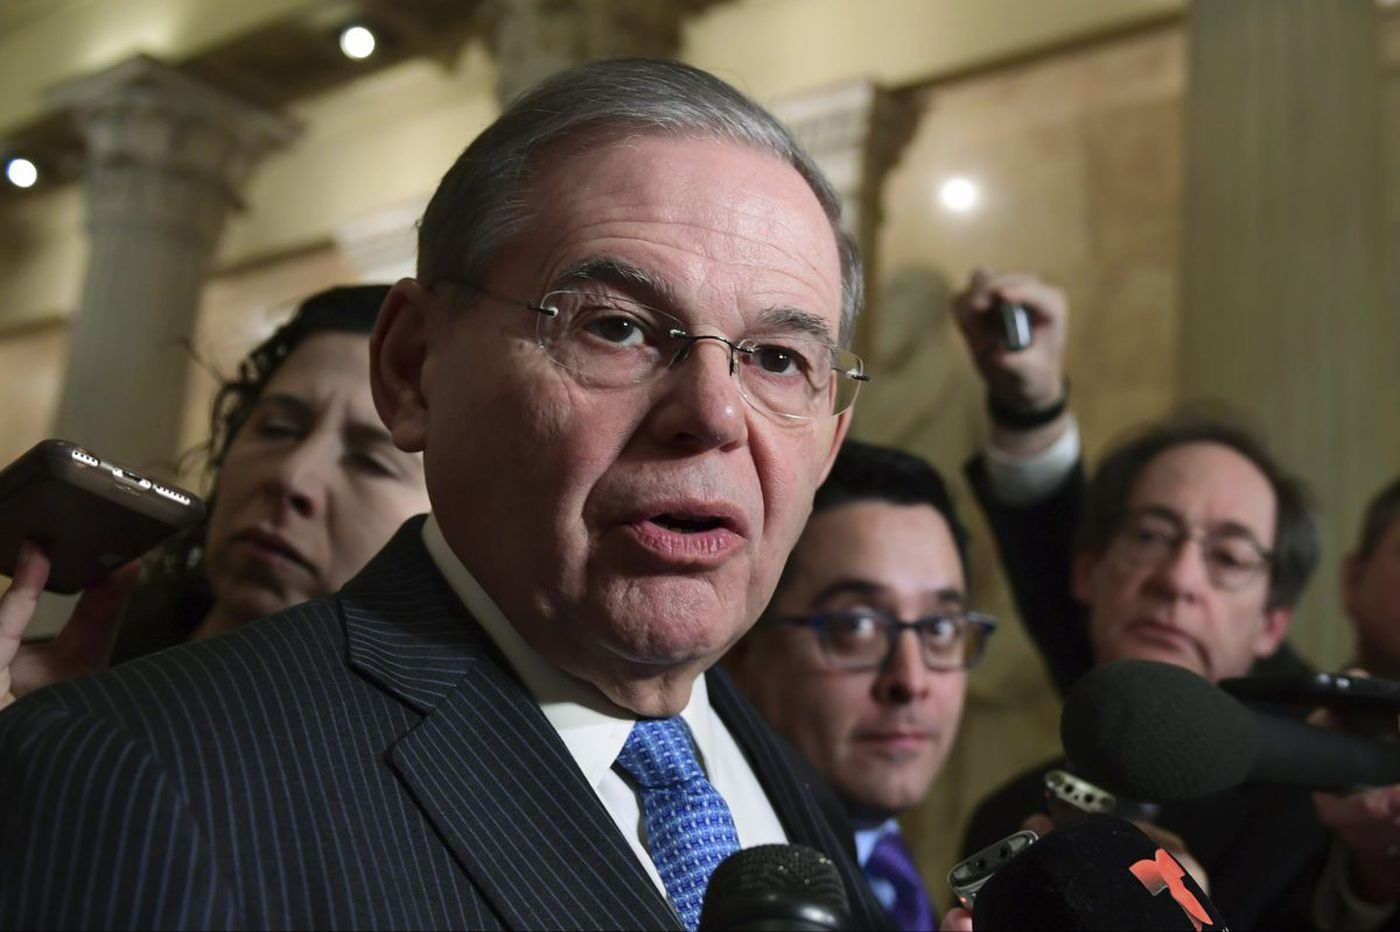 Feds will retry N.J. Sen. Bob Menendez on corruption charges